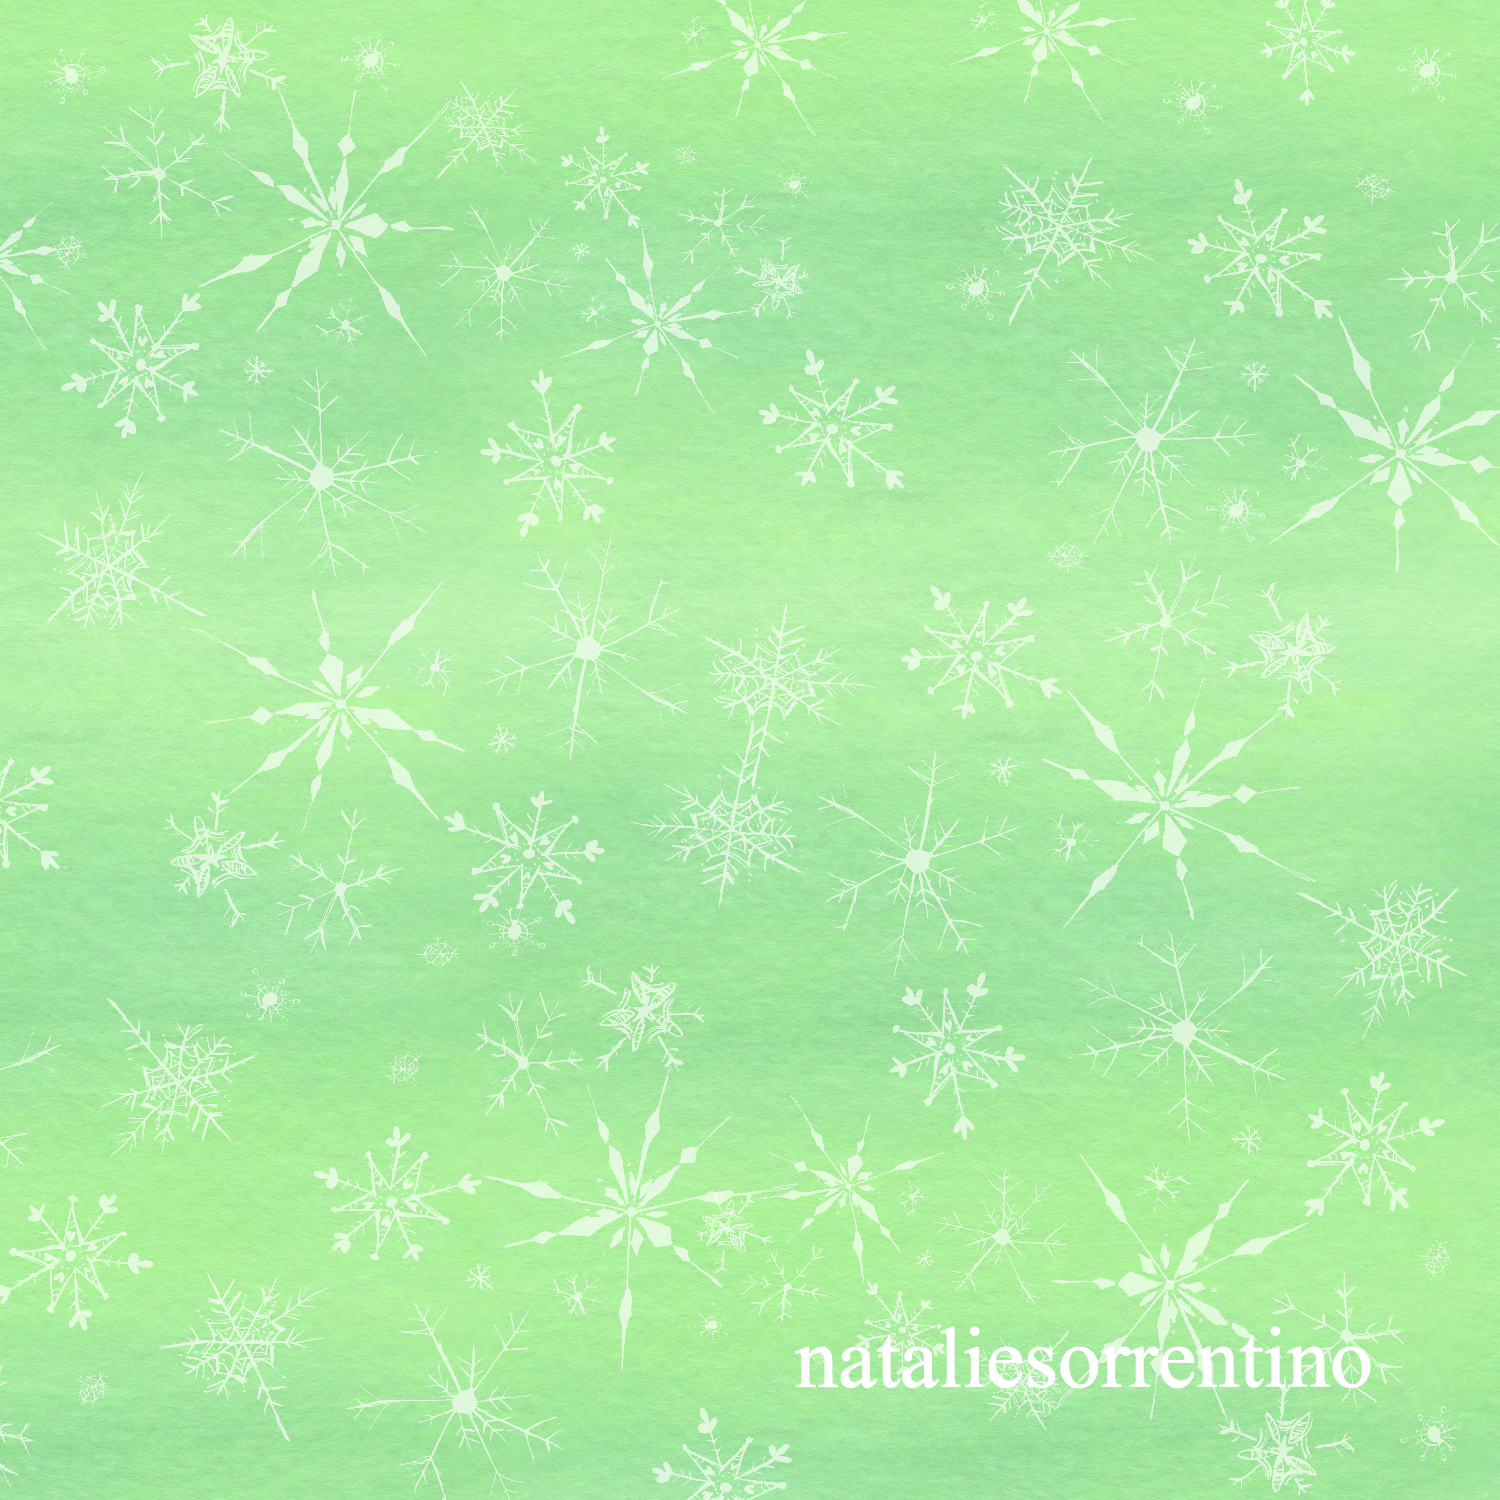 NS Snowflakes Green_edited